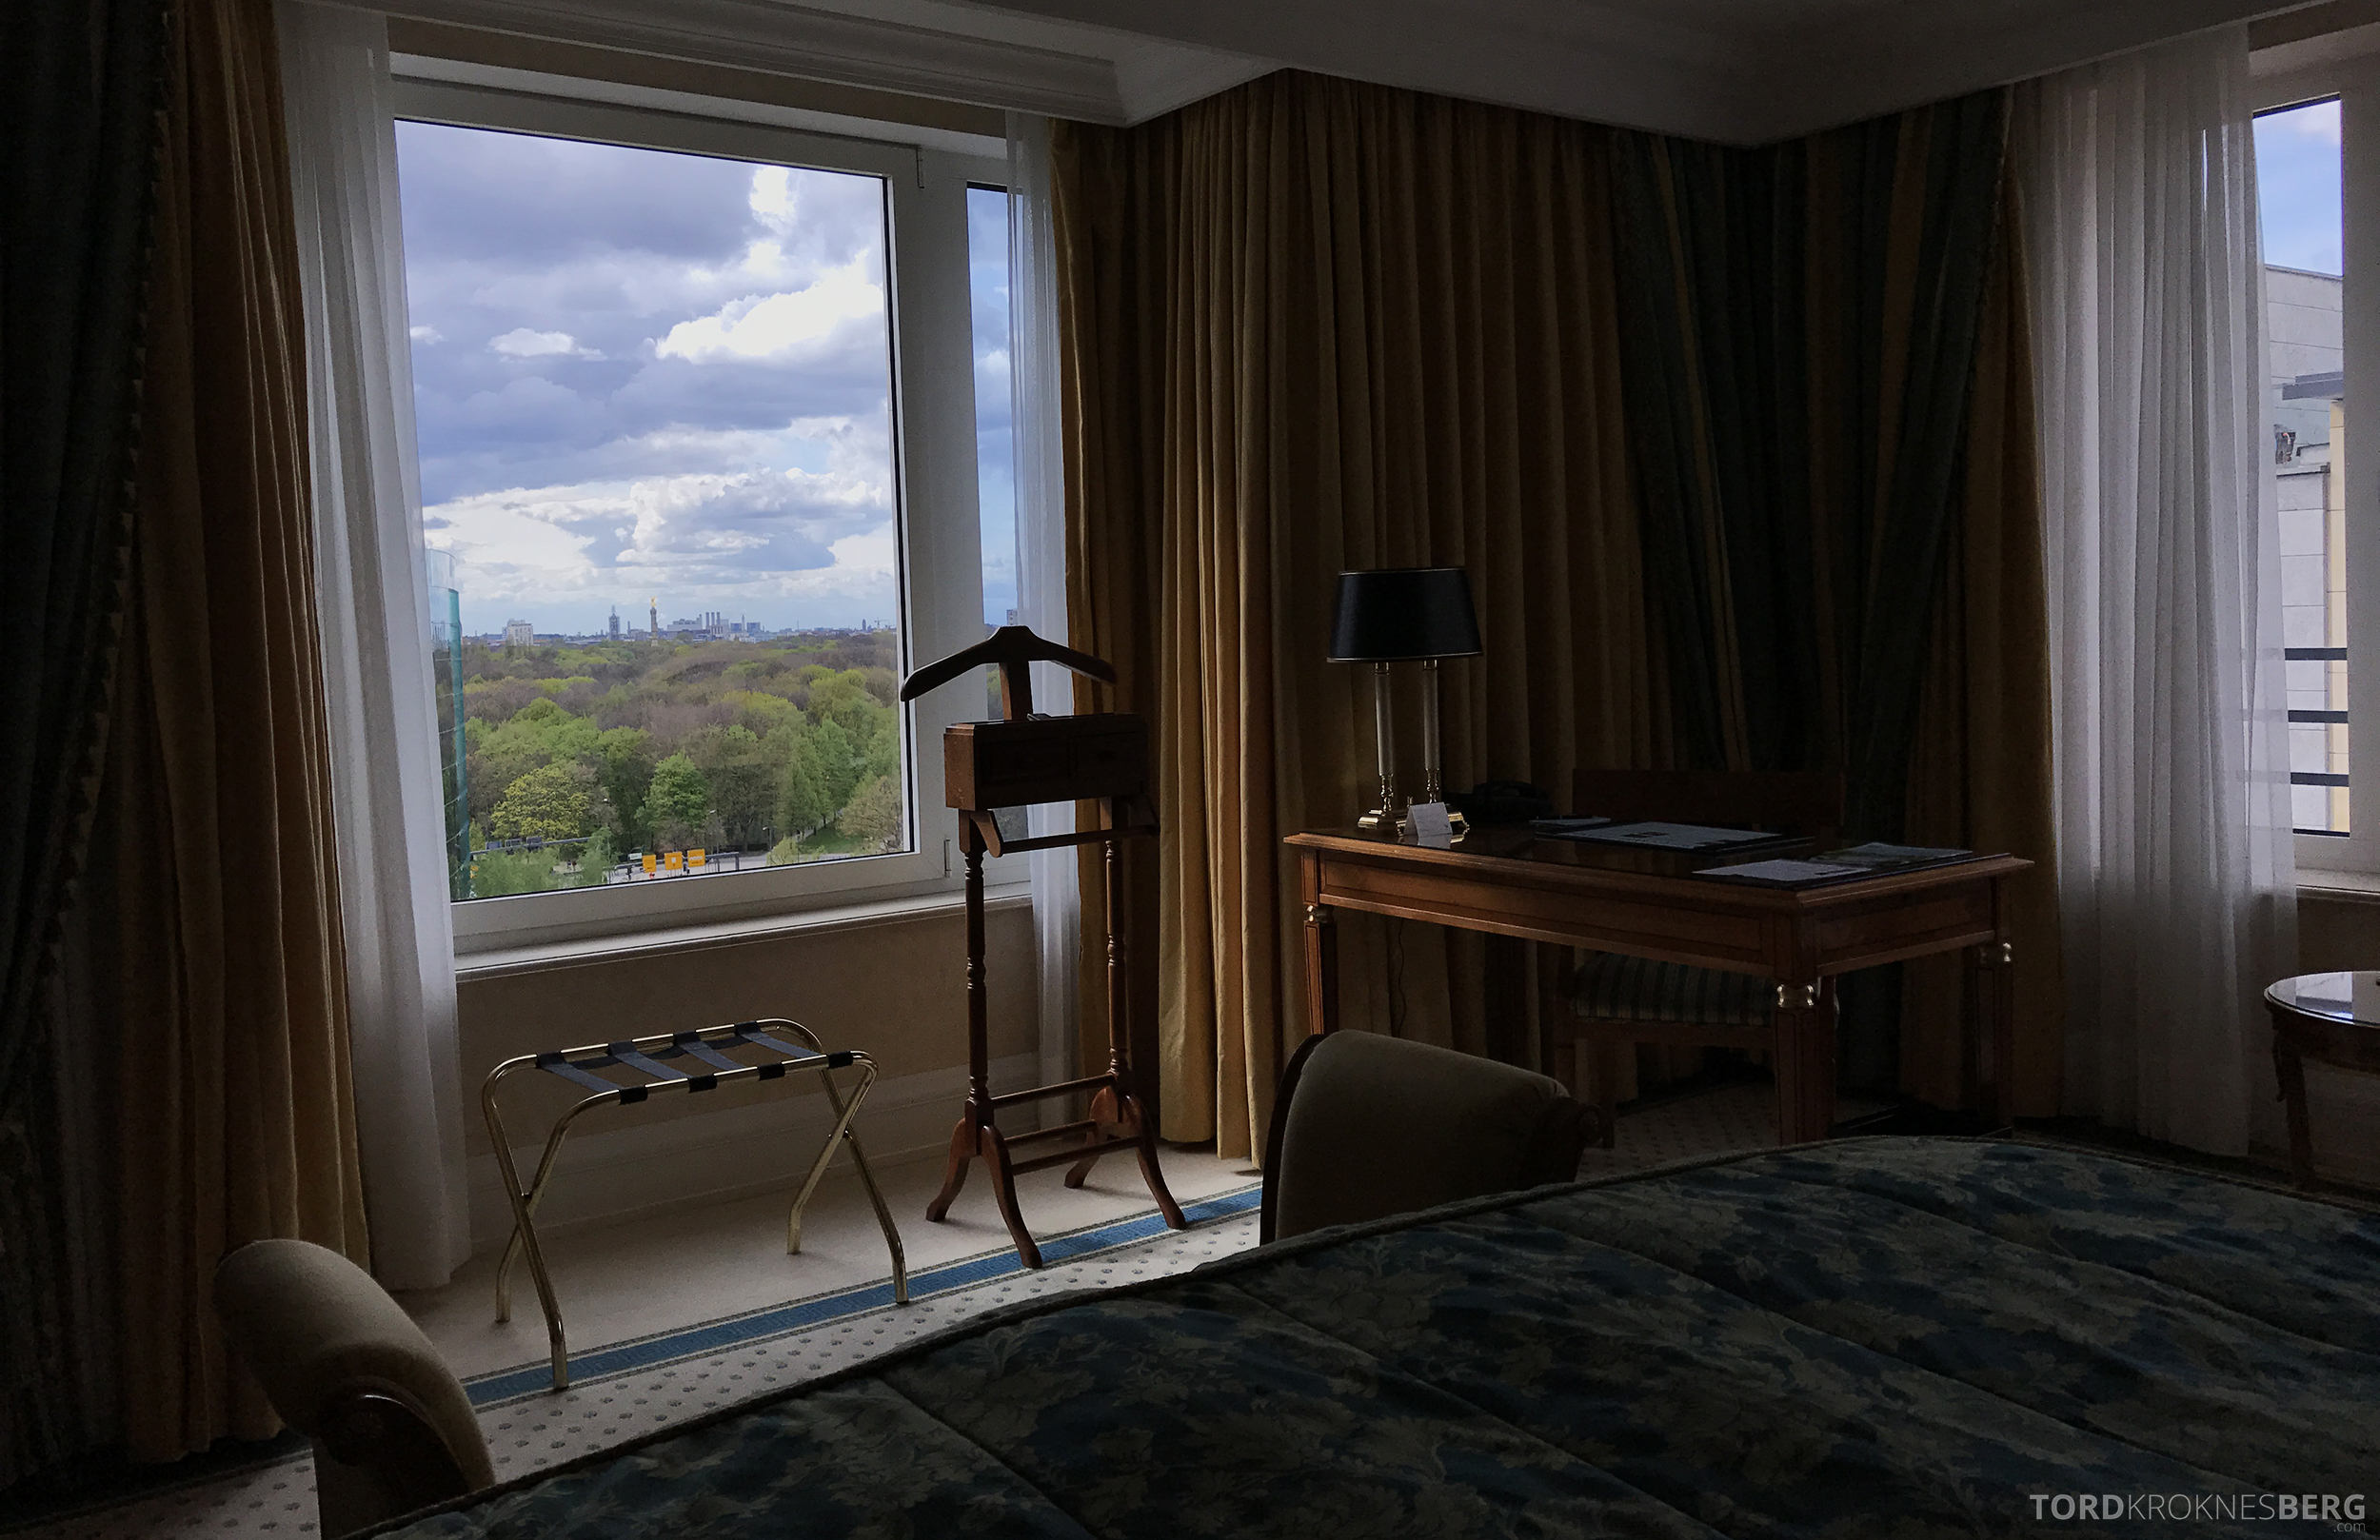 The Ritz-Carlton Berlin utsikt seng